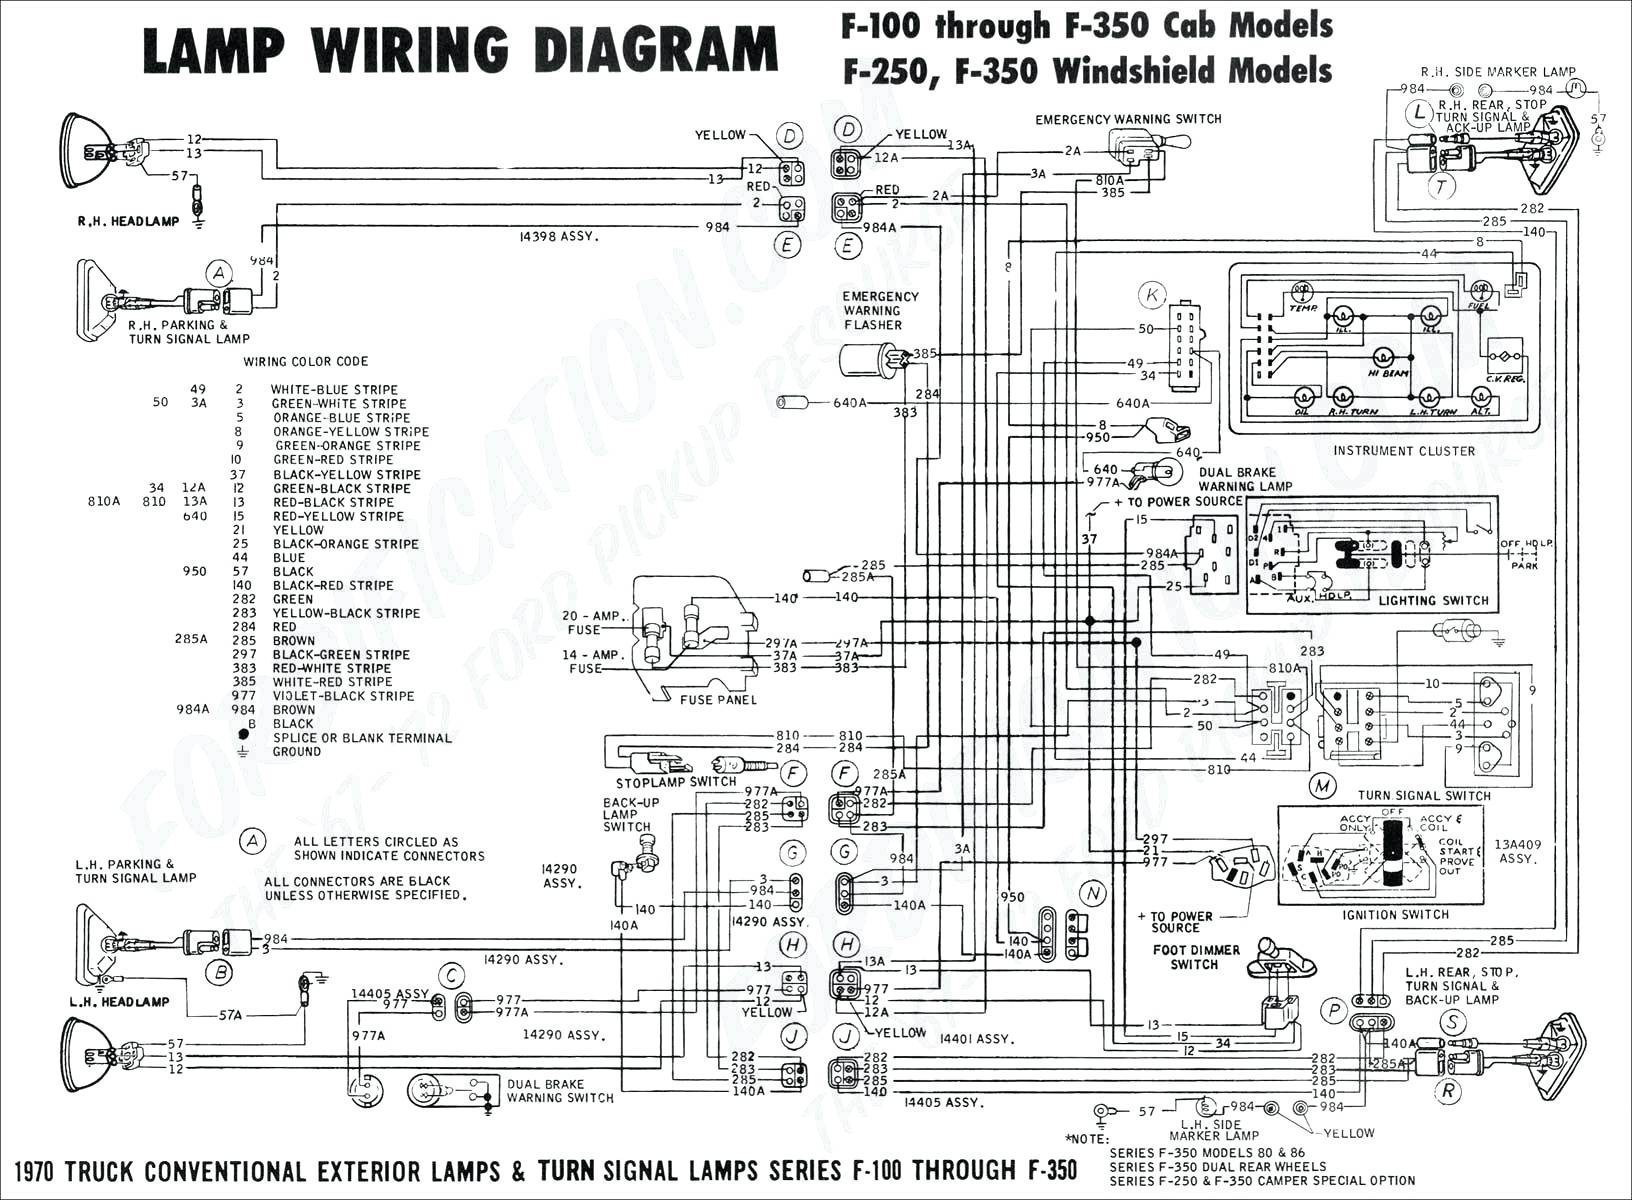 1998 isuzu Rodeo Engine Diagram Fresh How to Wire A Fuel Pump Relay Diagram • Electrical Outlet